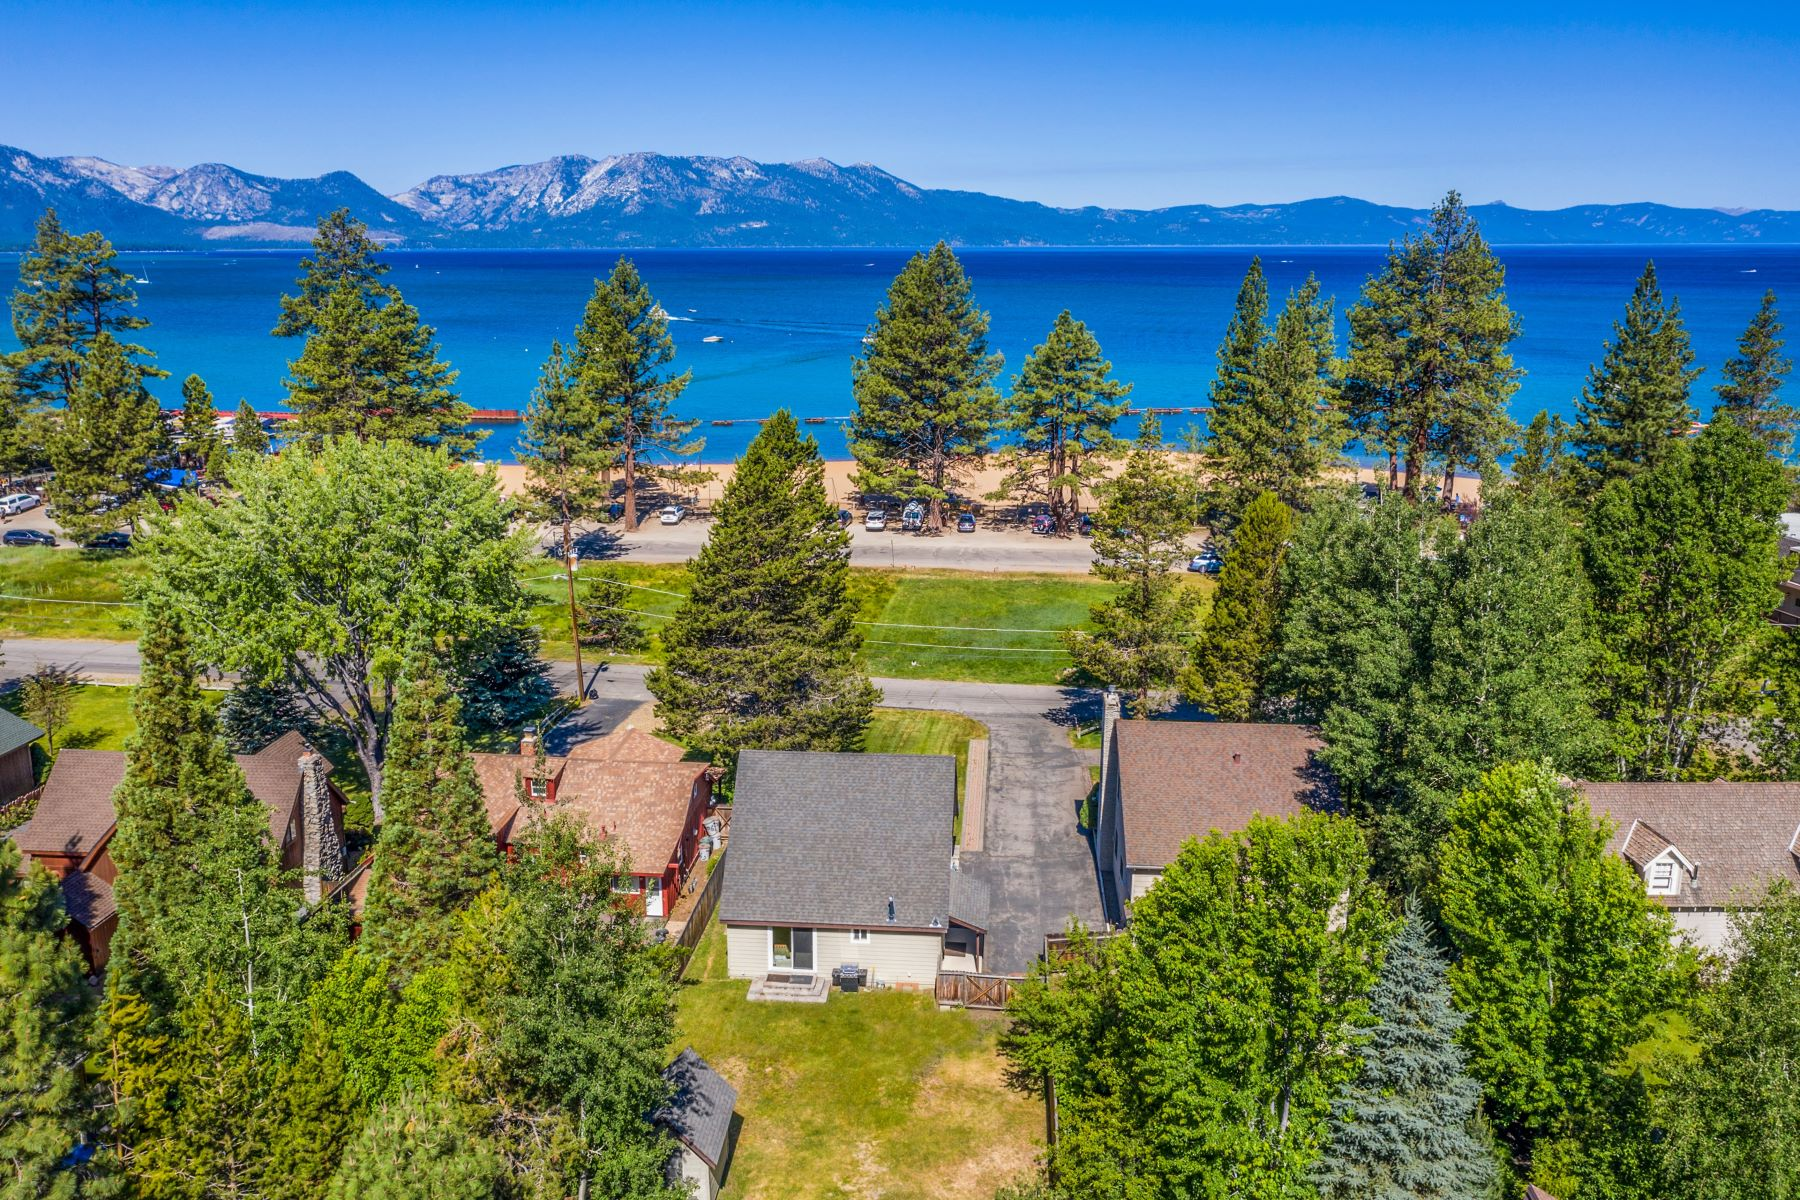 Single Family Homes for Active at Lakefront Property 4068/4067 Sunrise Lane South Lake Tahoe, California 96150 United States